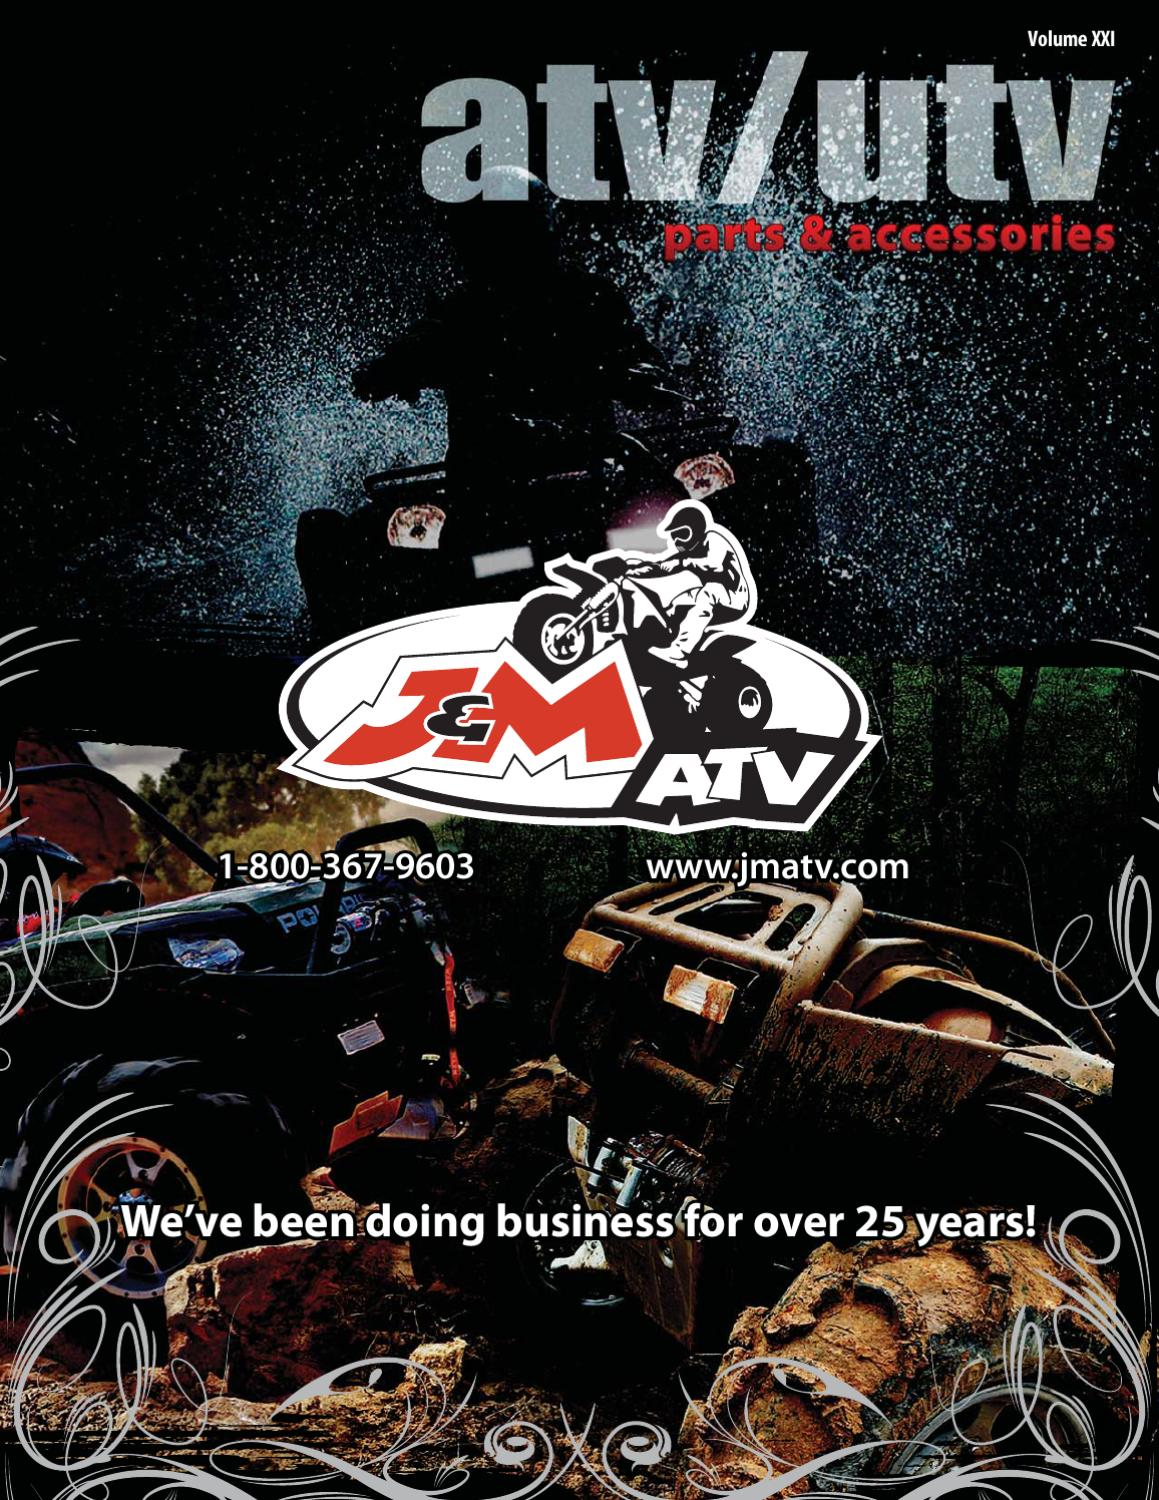 Jm Atv Supply Utv Parts Catalog Version 21 By Trx450es Wiring Diagram Issuu